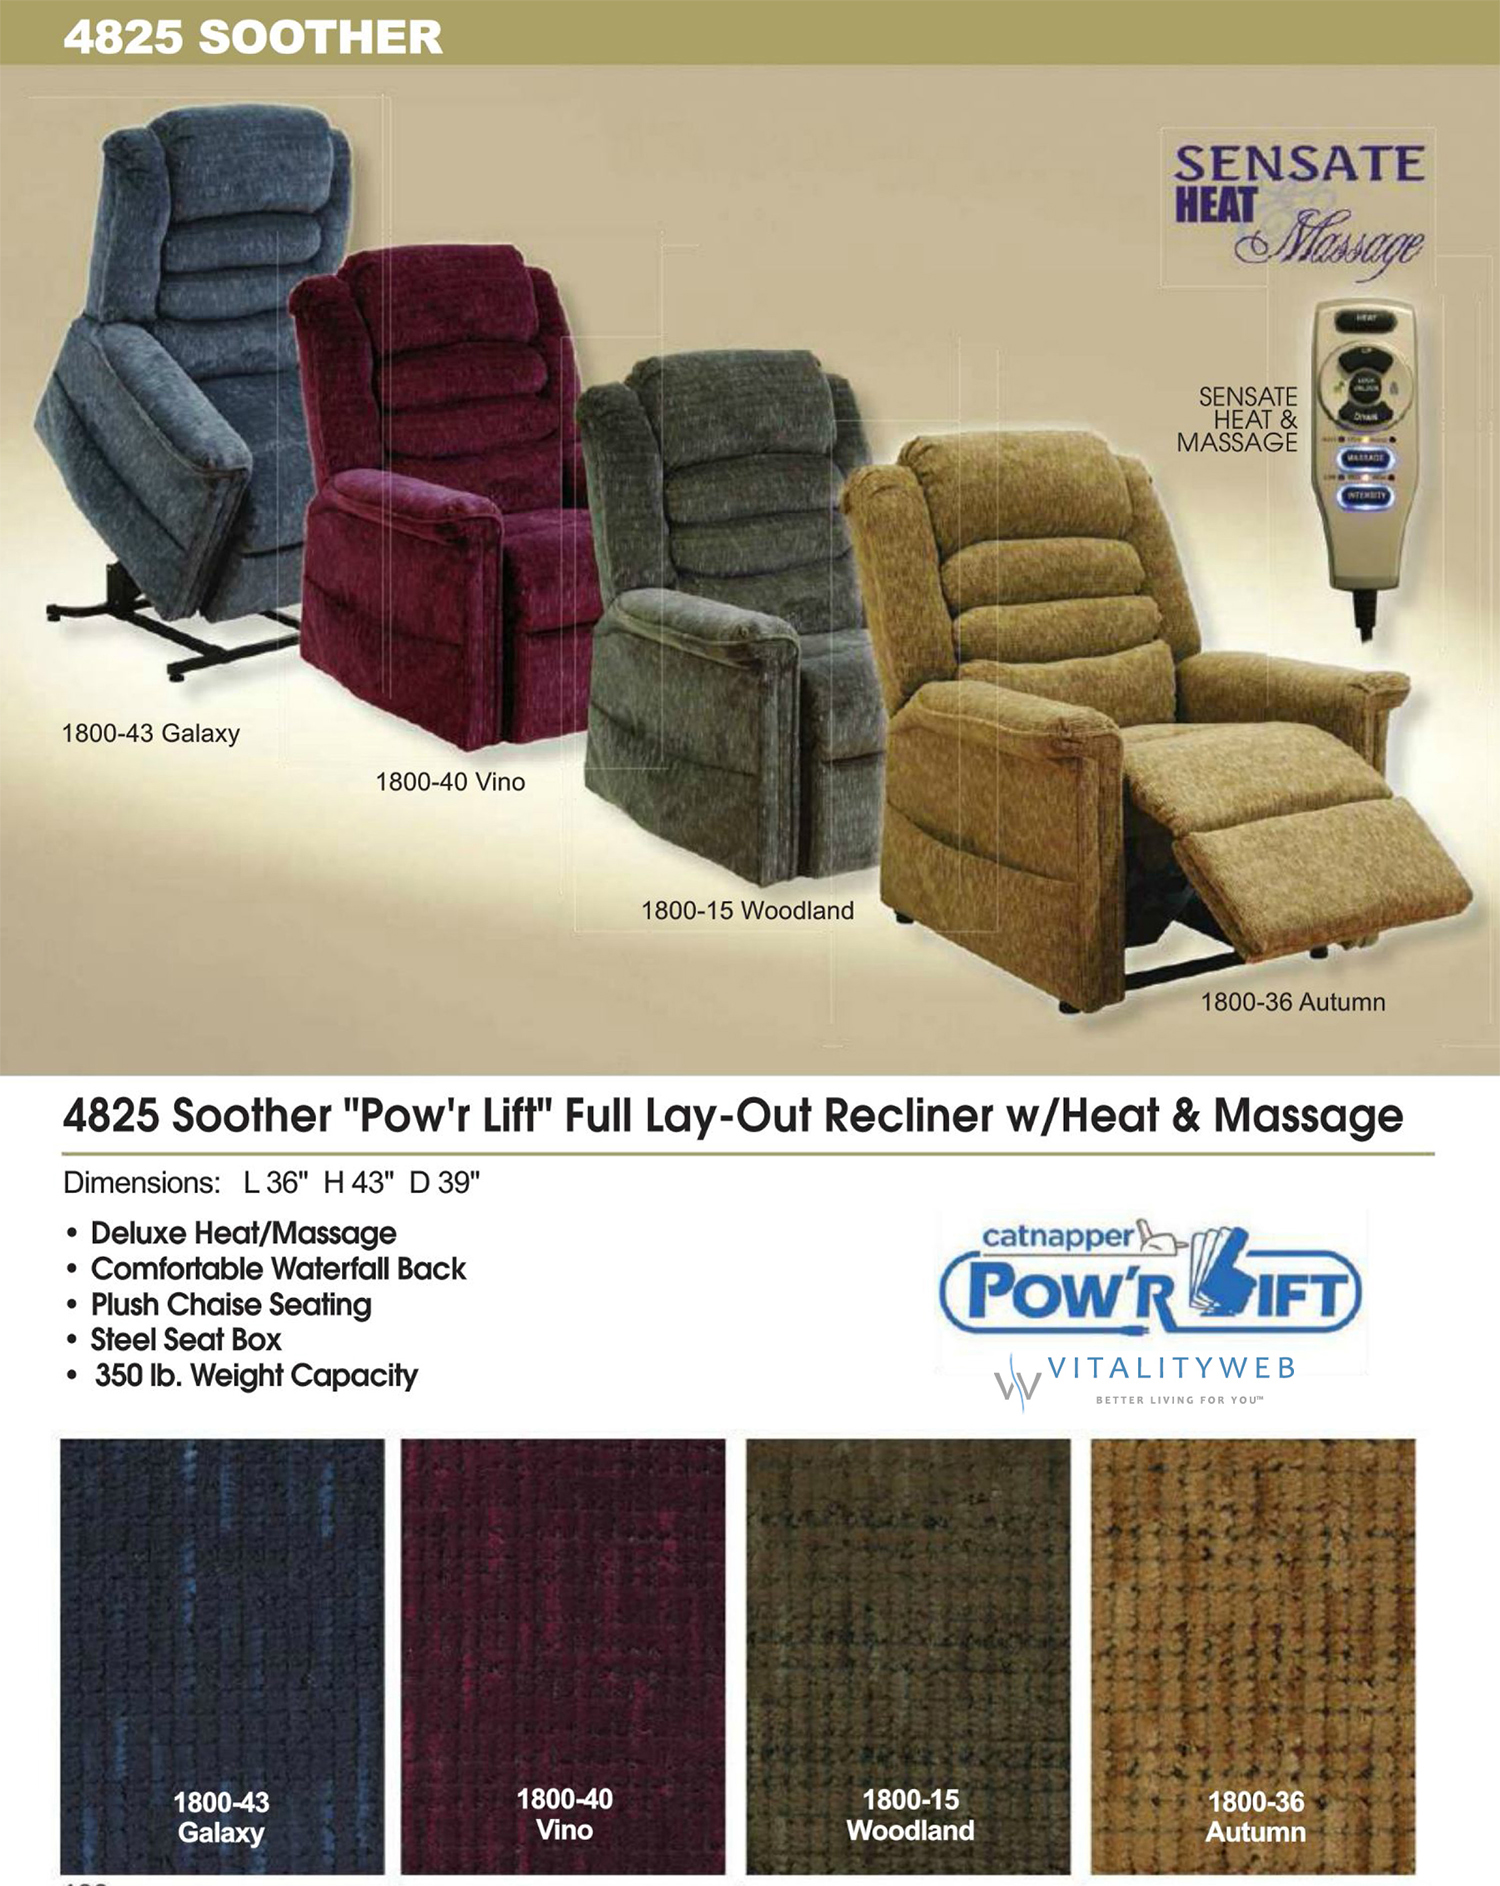 catnapper soother lift chair recliner information - Catnapper Recliner